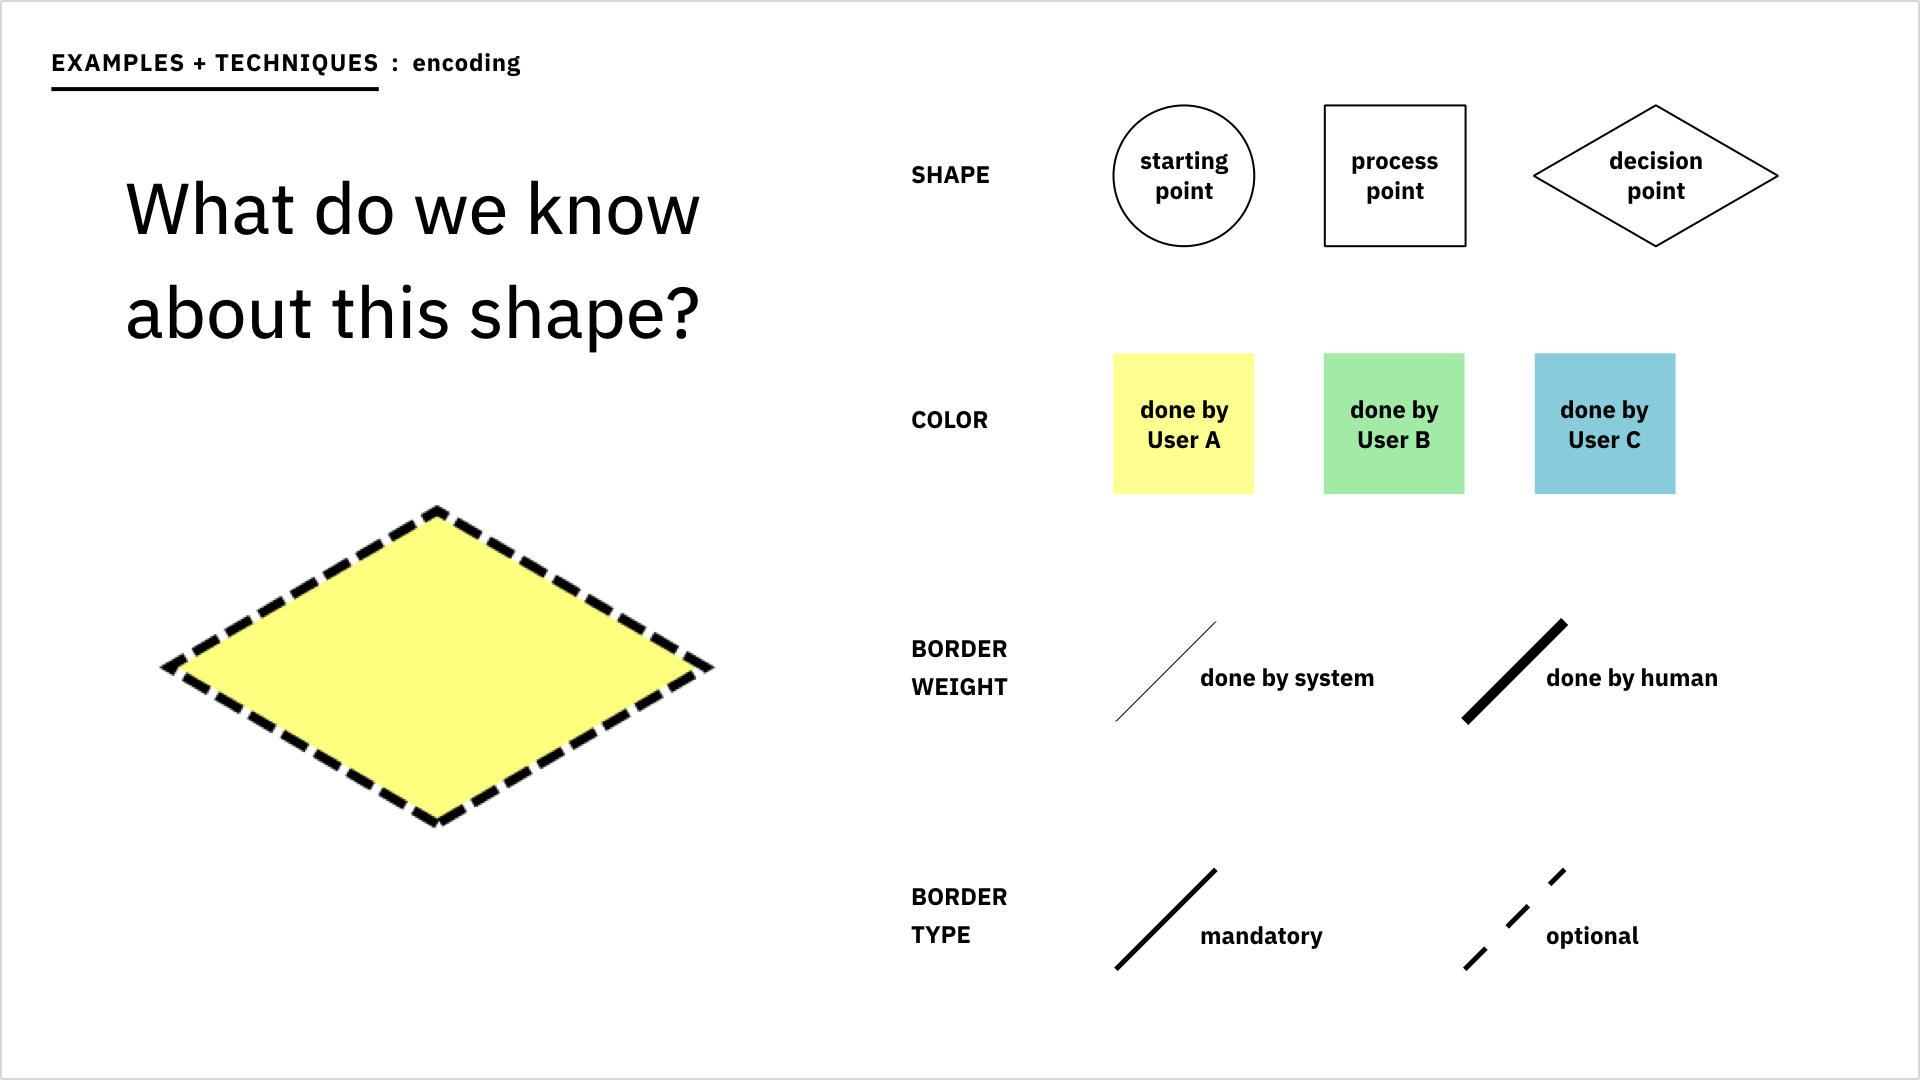 A slide showing what we can know about a shape and legend together.